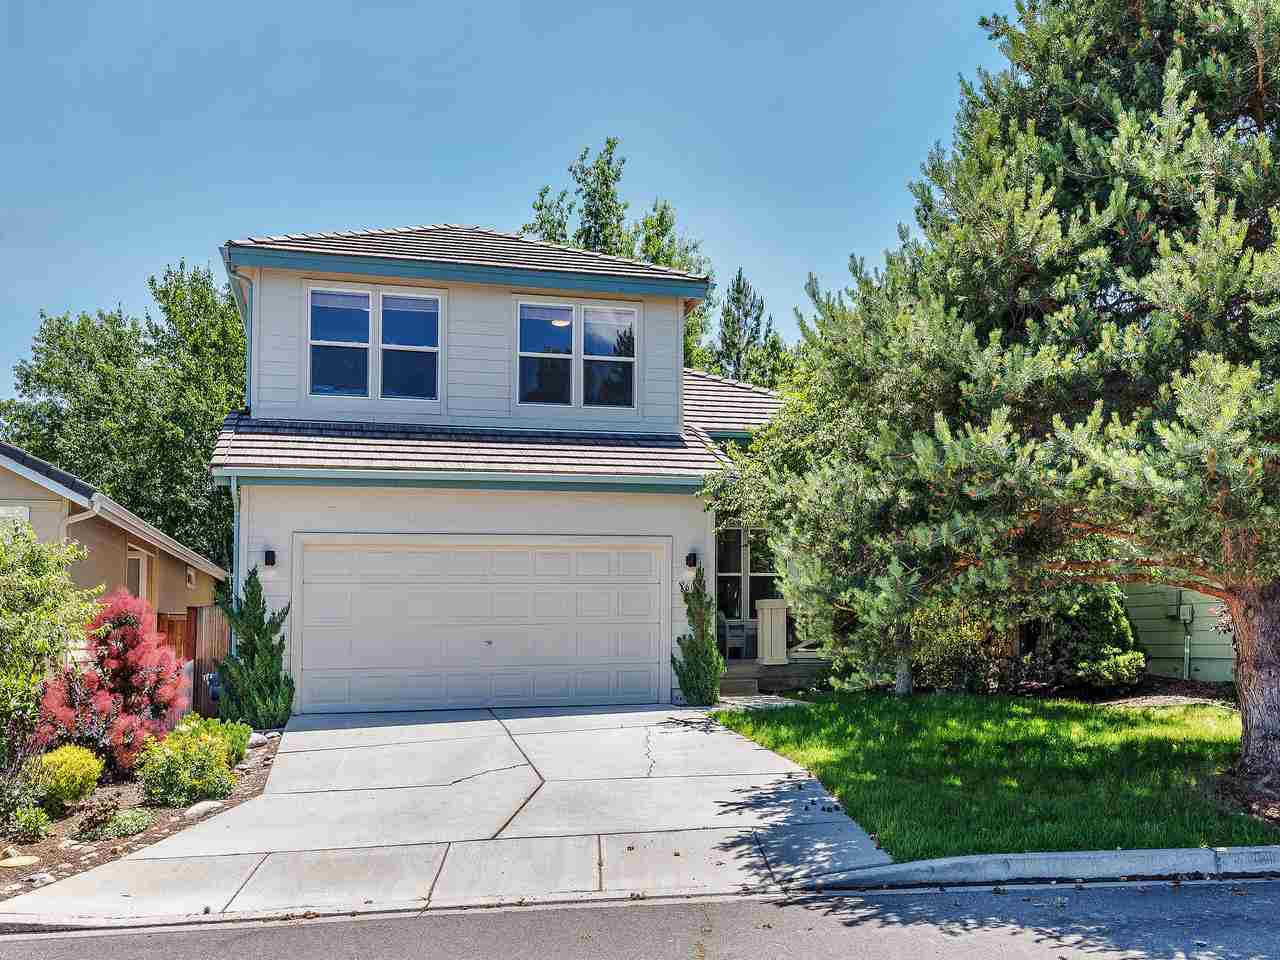 760 Caughlin Glen, Reno, NV 89519-0644 now has a new price of $525,000!